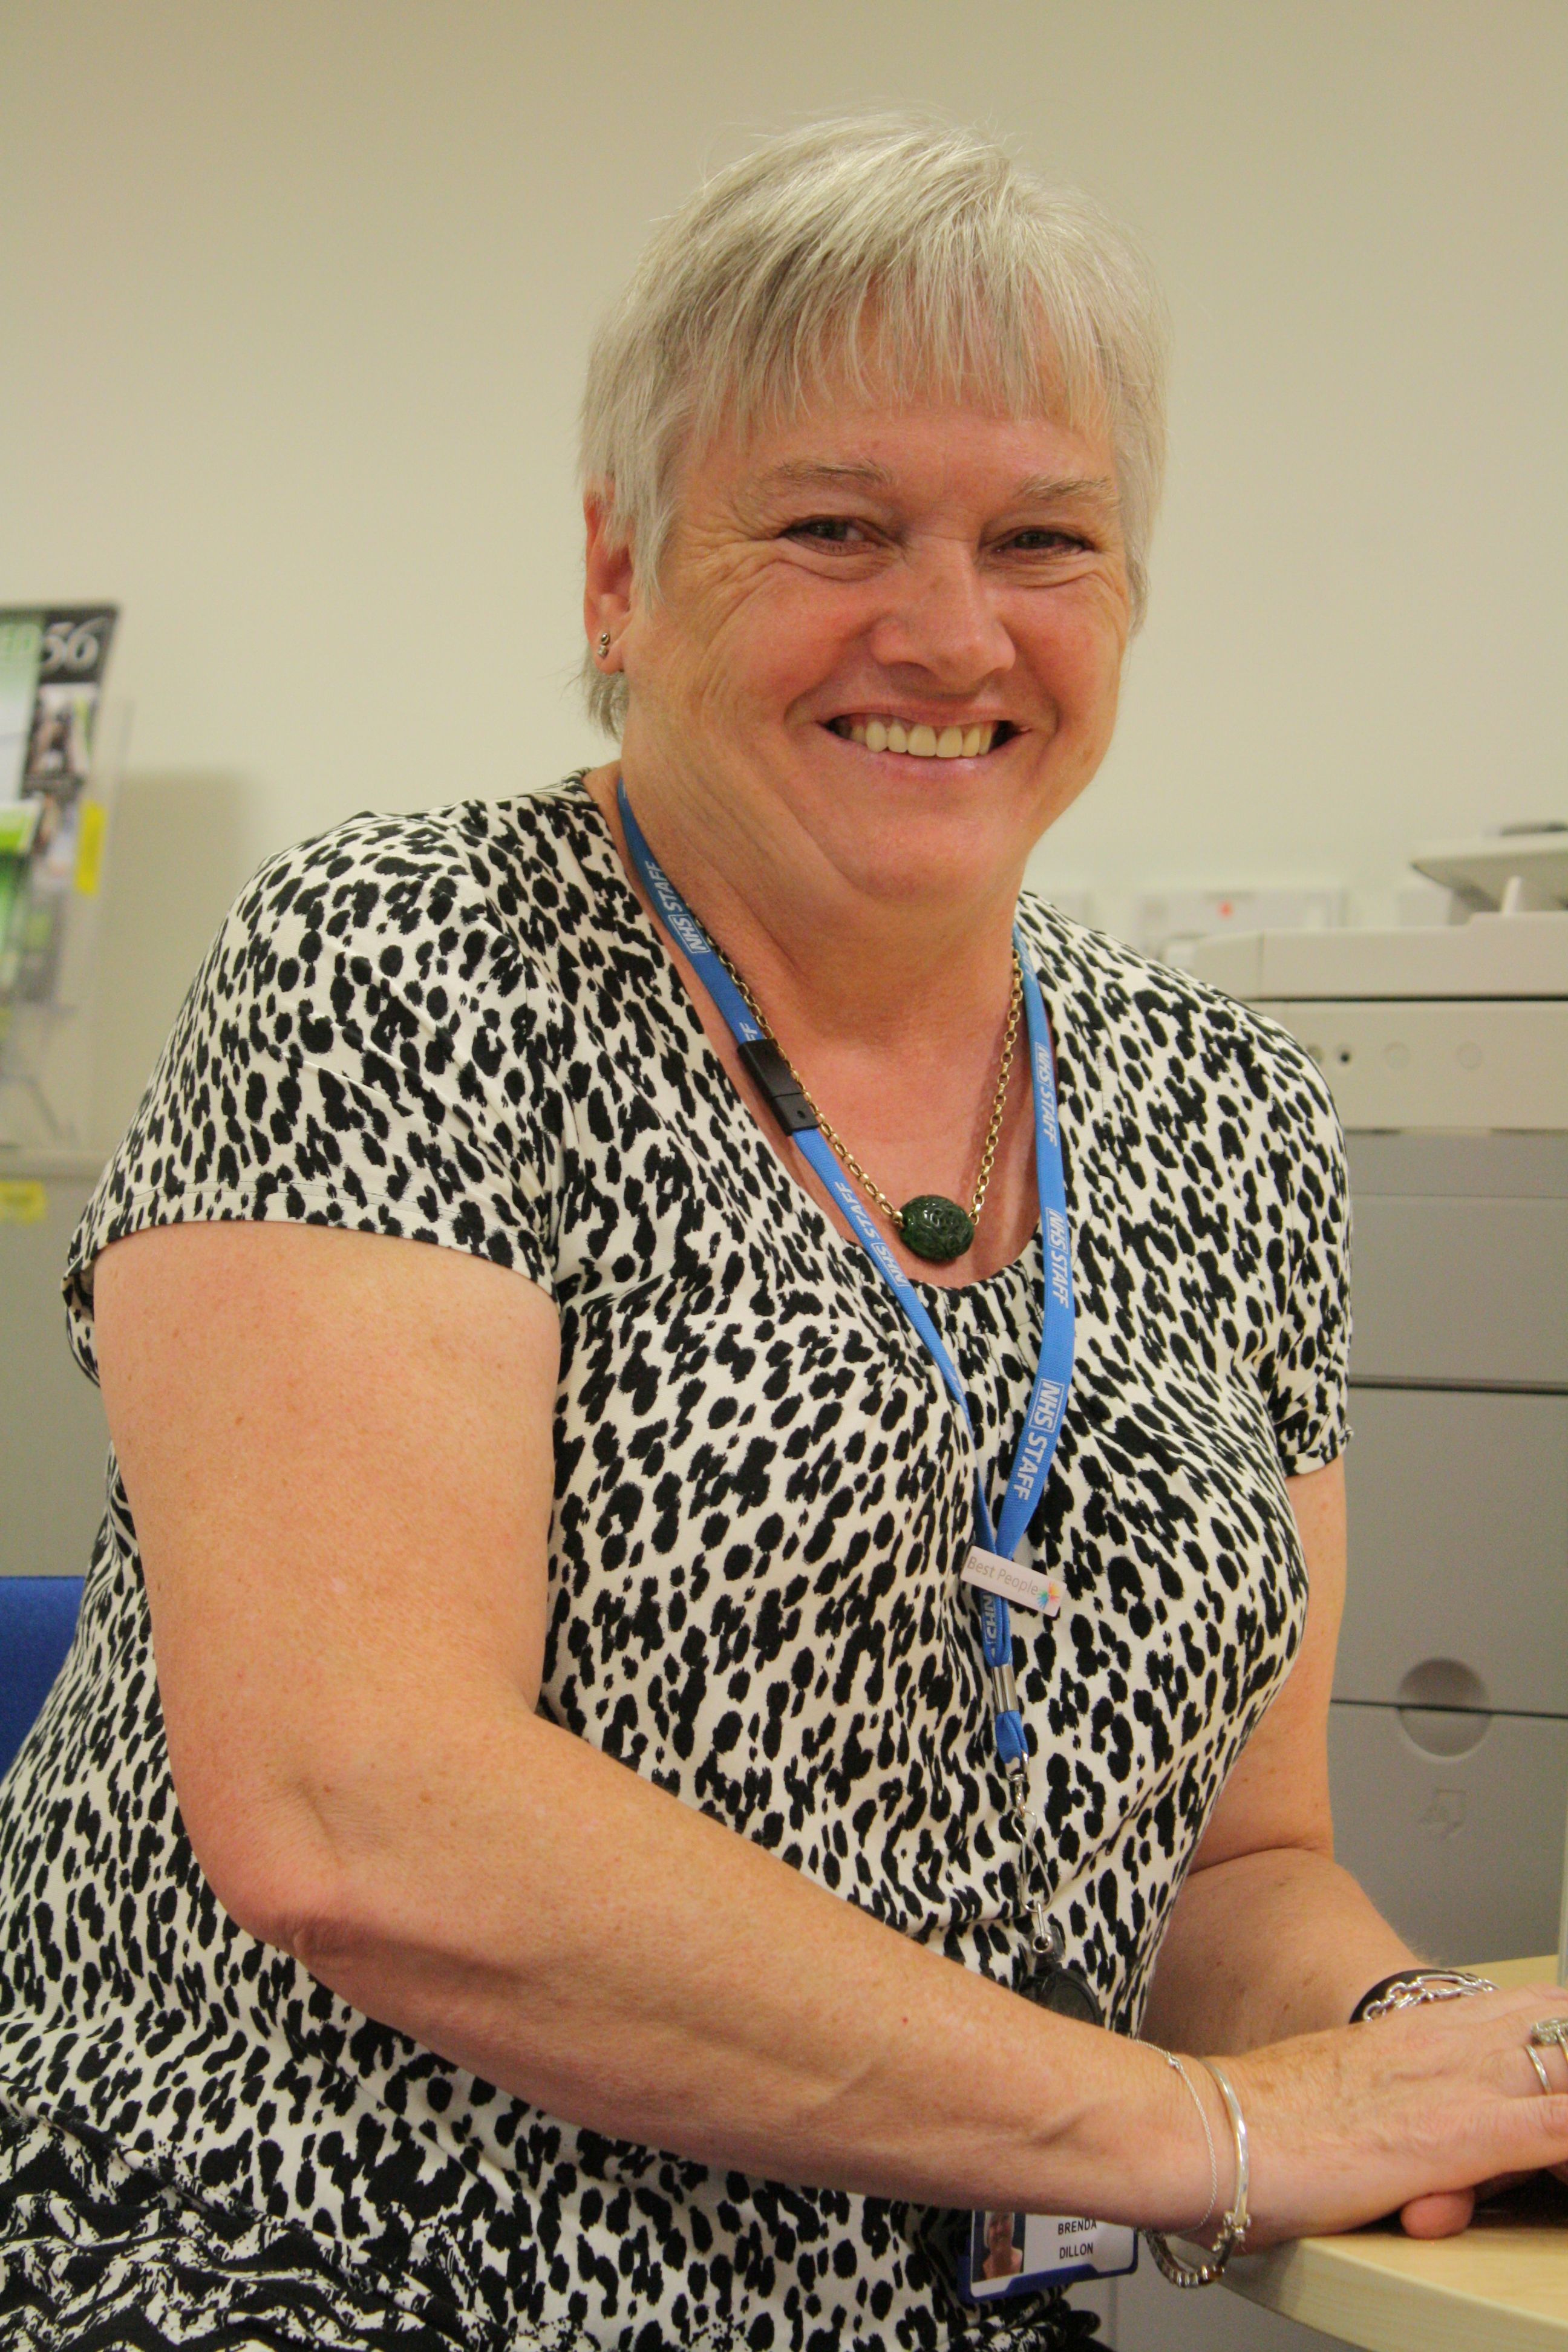 Brenda Dillon's 40-year career at Portsmouth Hospitals NHS Trust